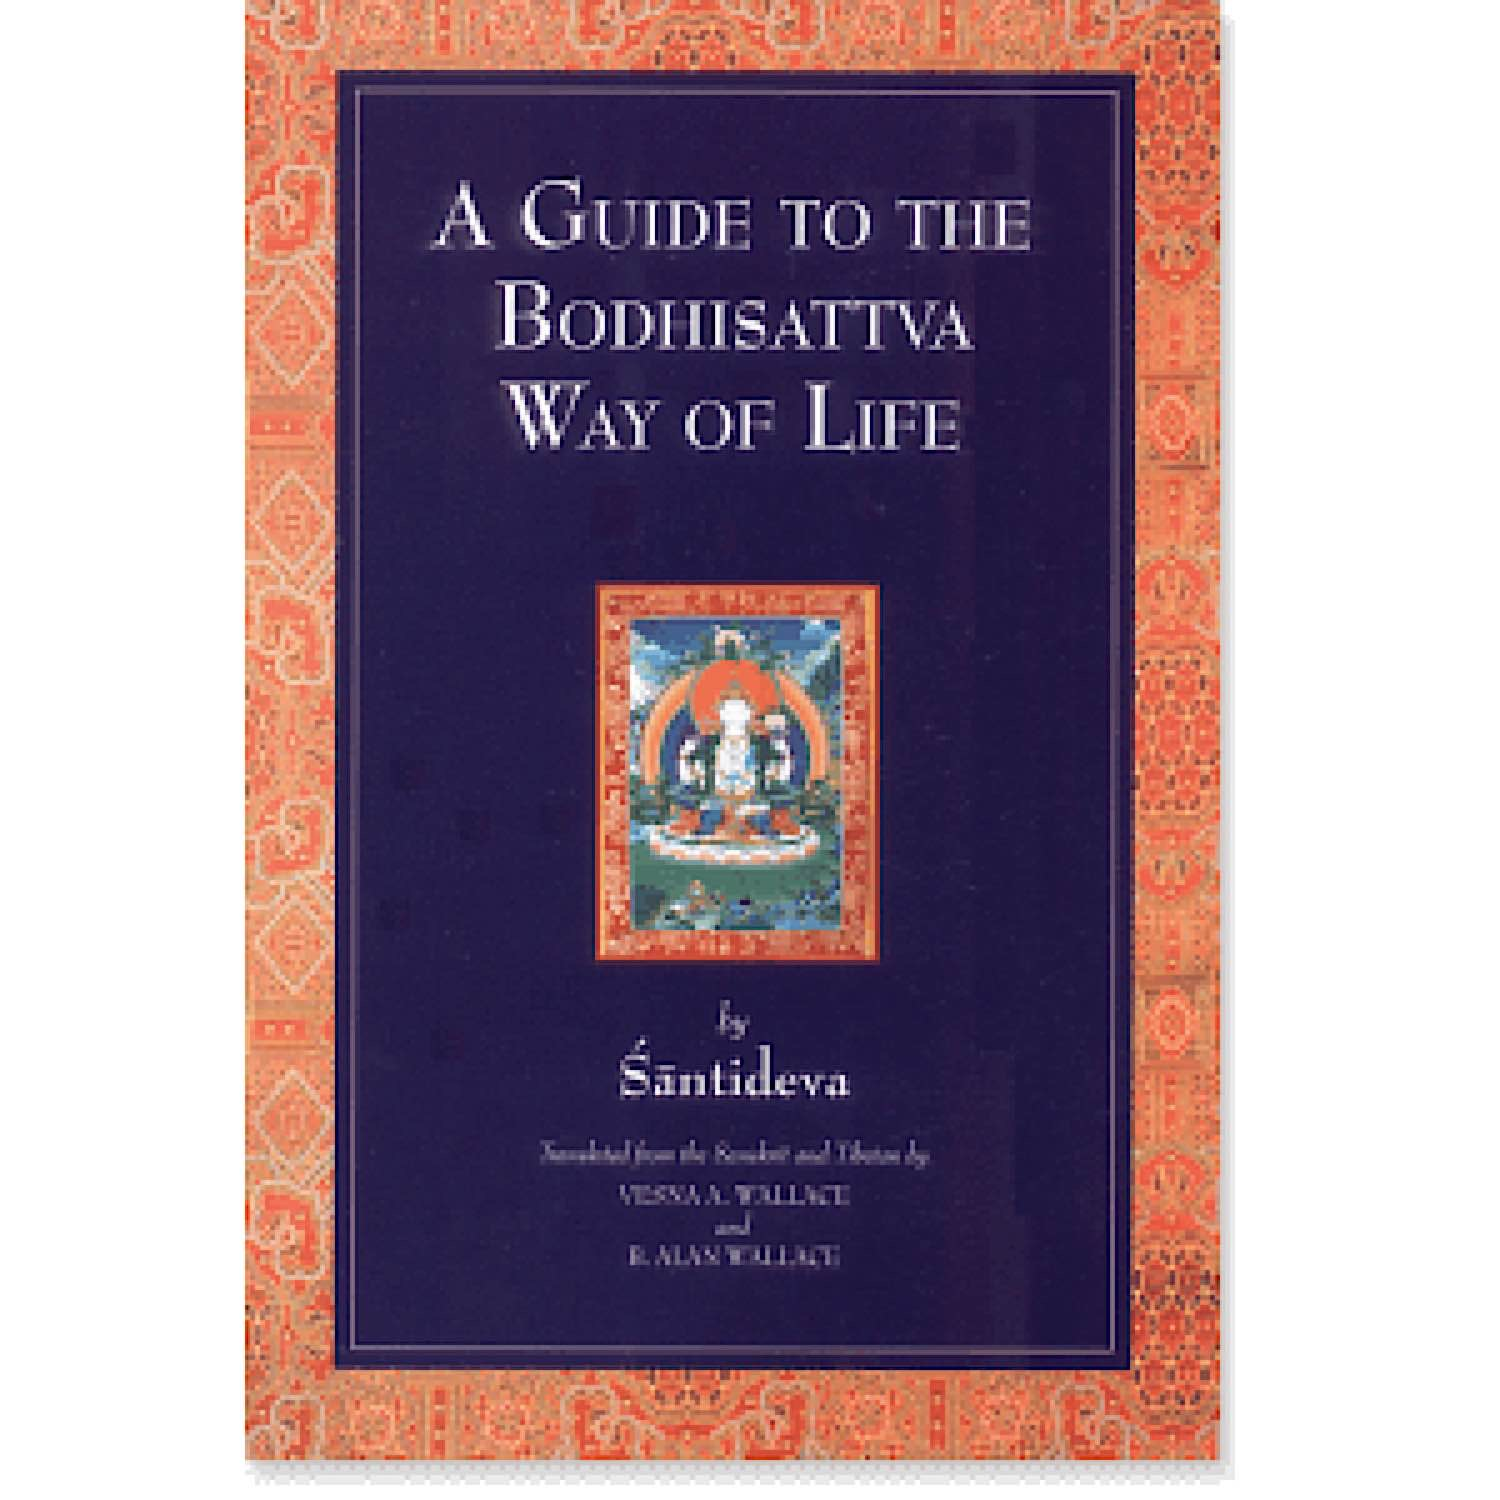 The classic text A Guide to the Bodhisattva Way of Life by Shantideva.